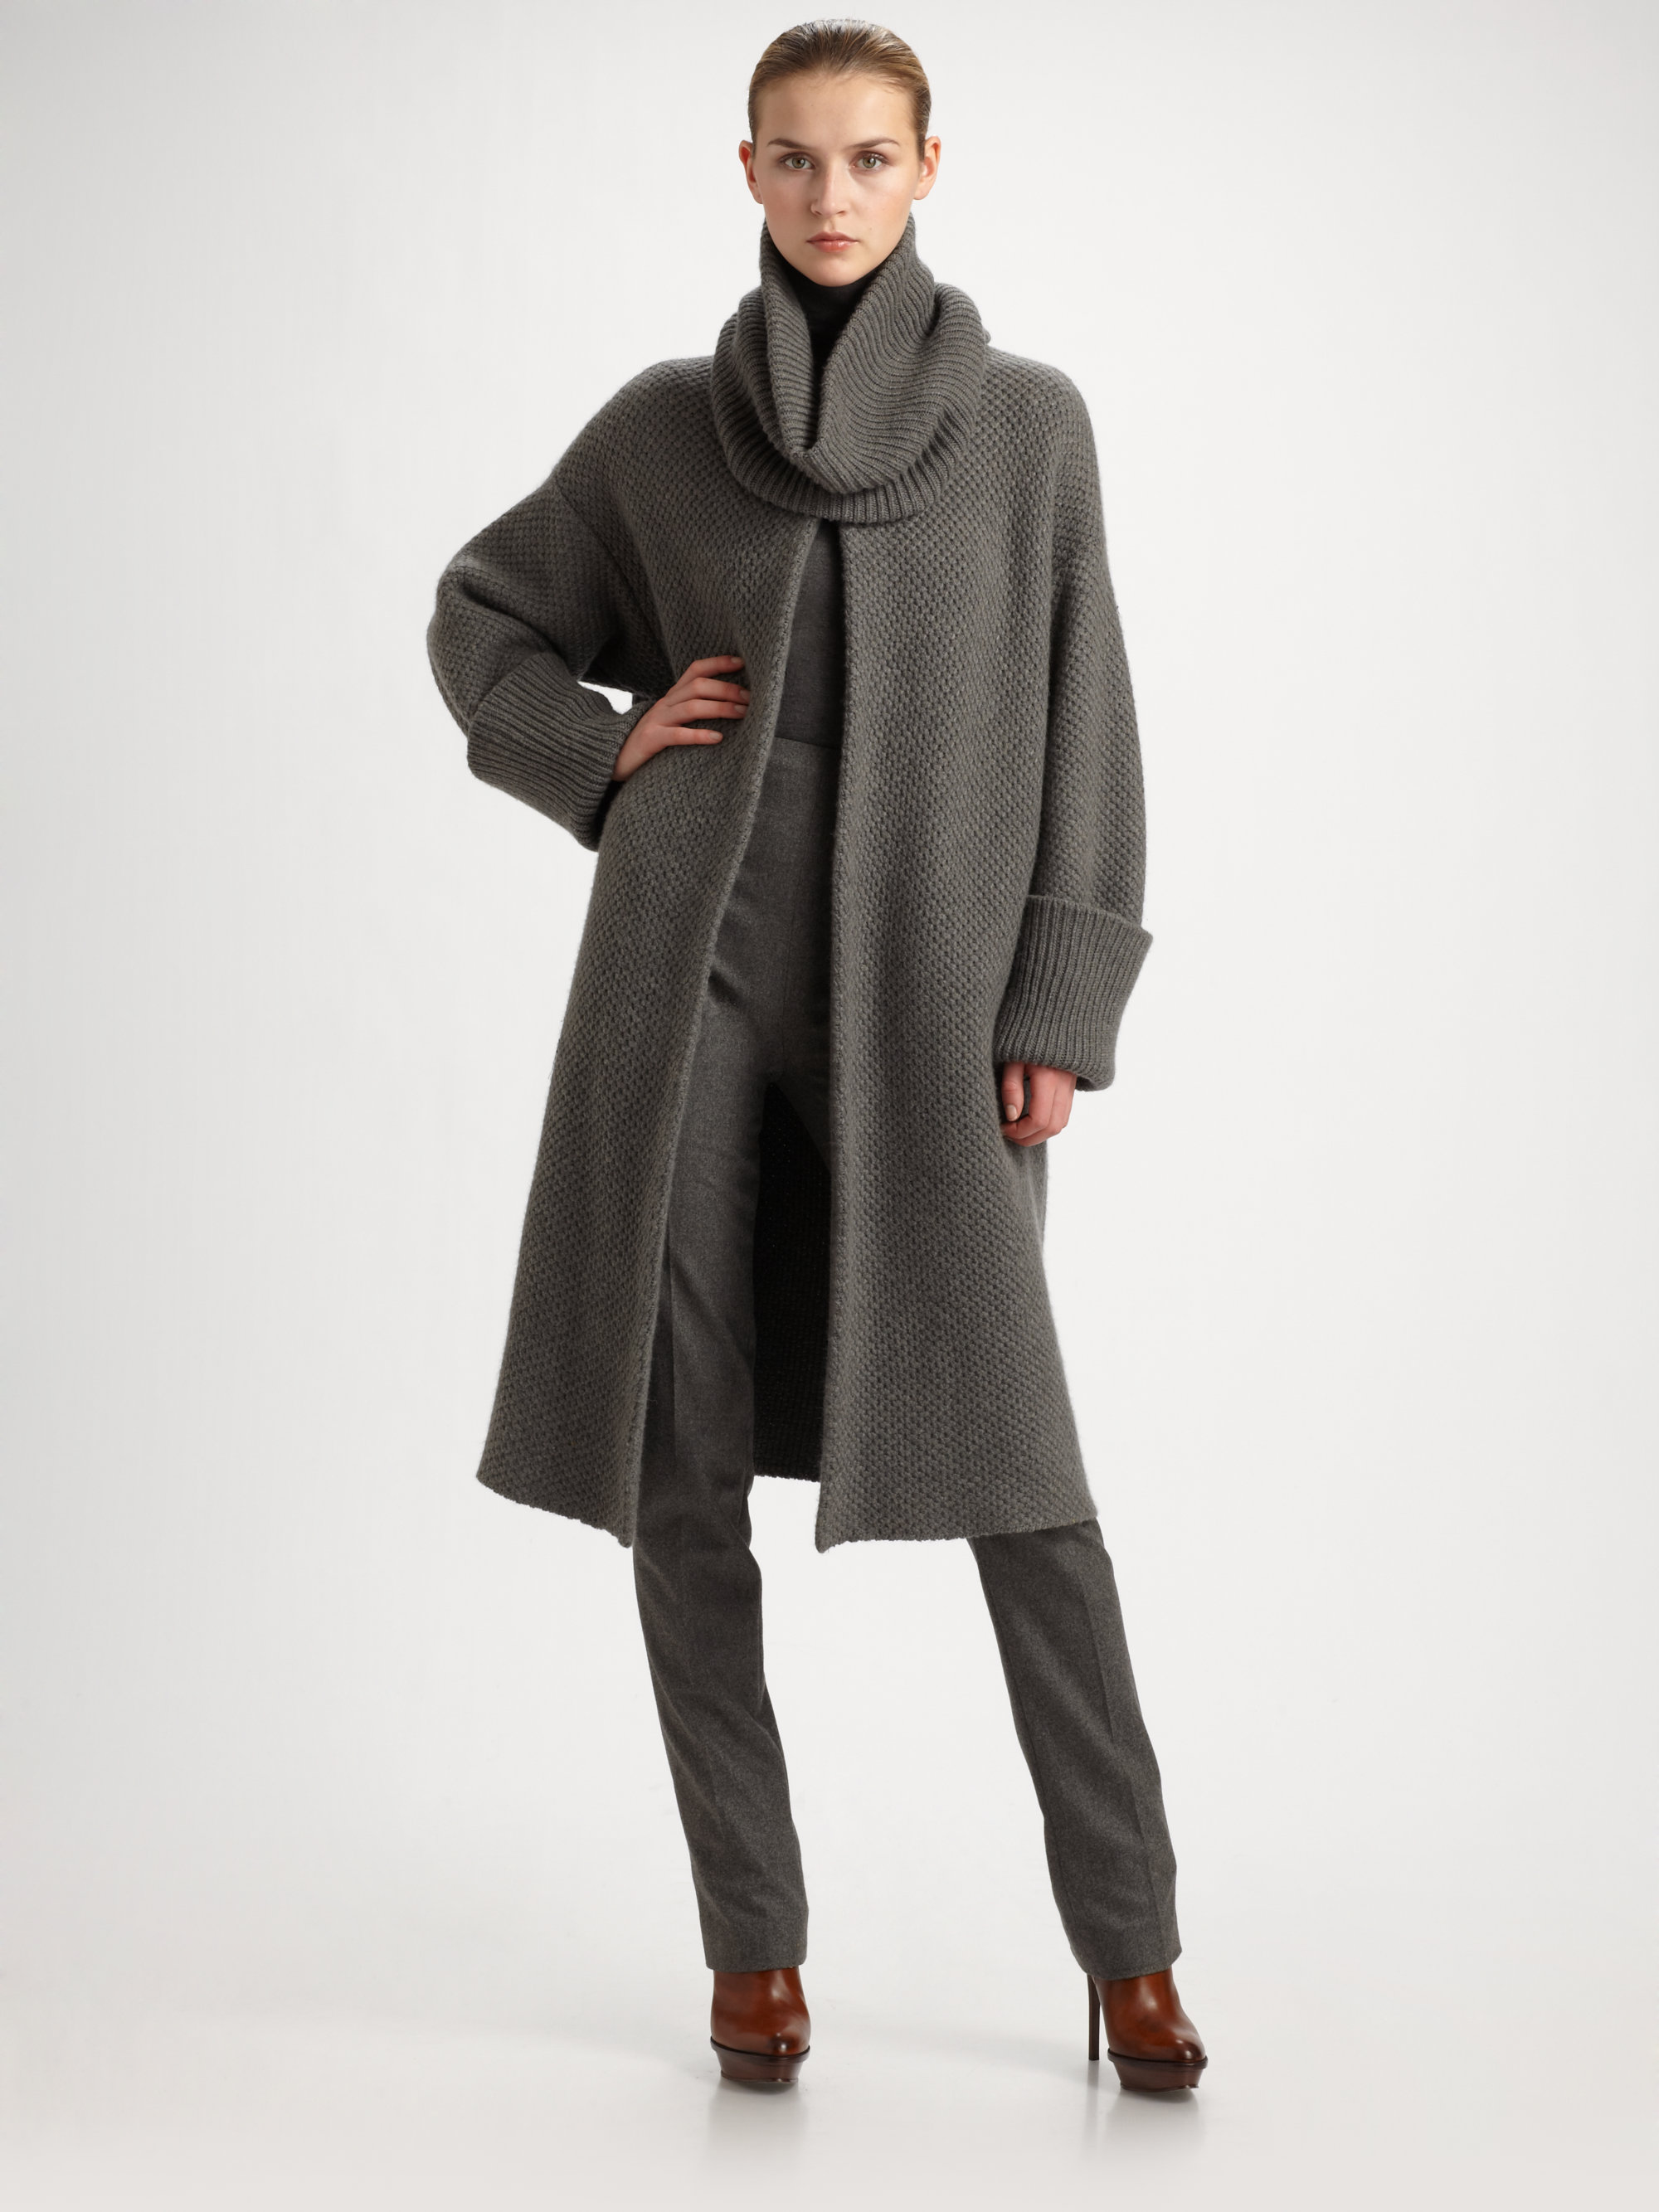 Ralph lauren collection Cashmere Sweater Coat in Gray | Lyst